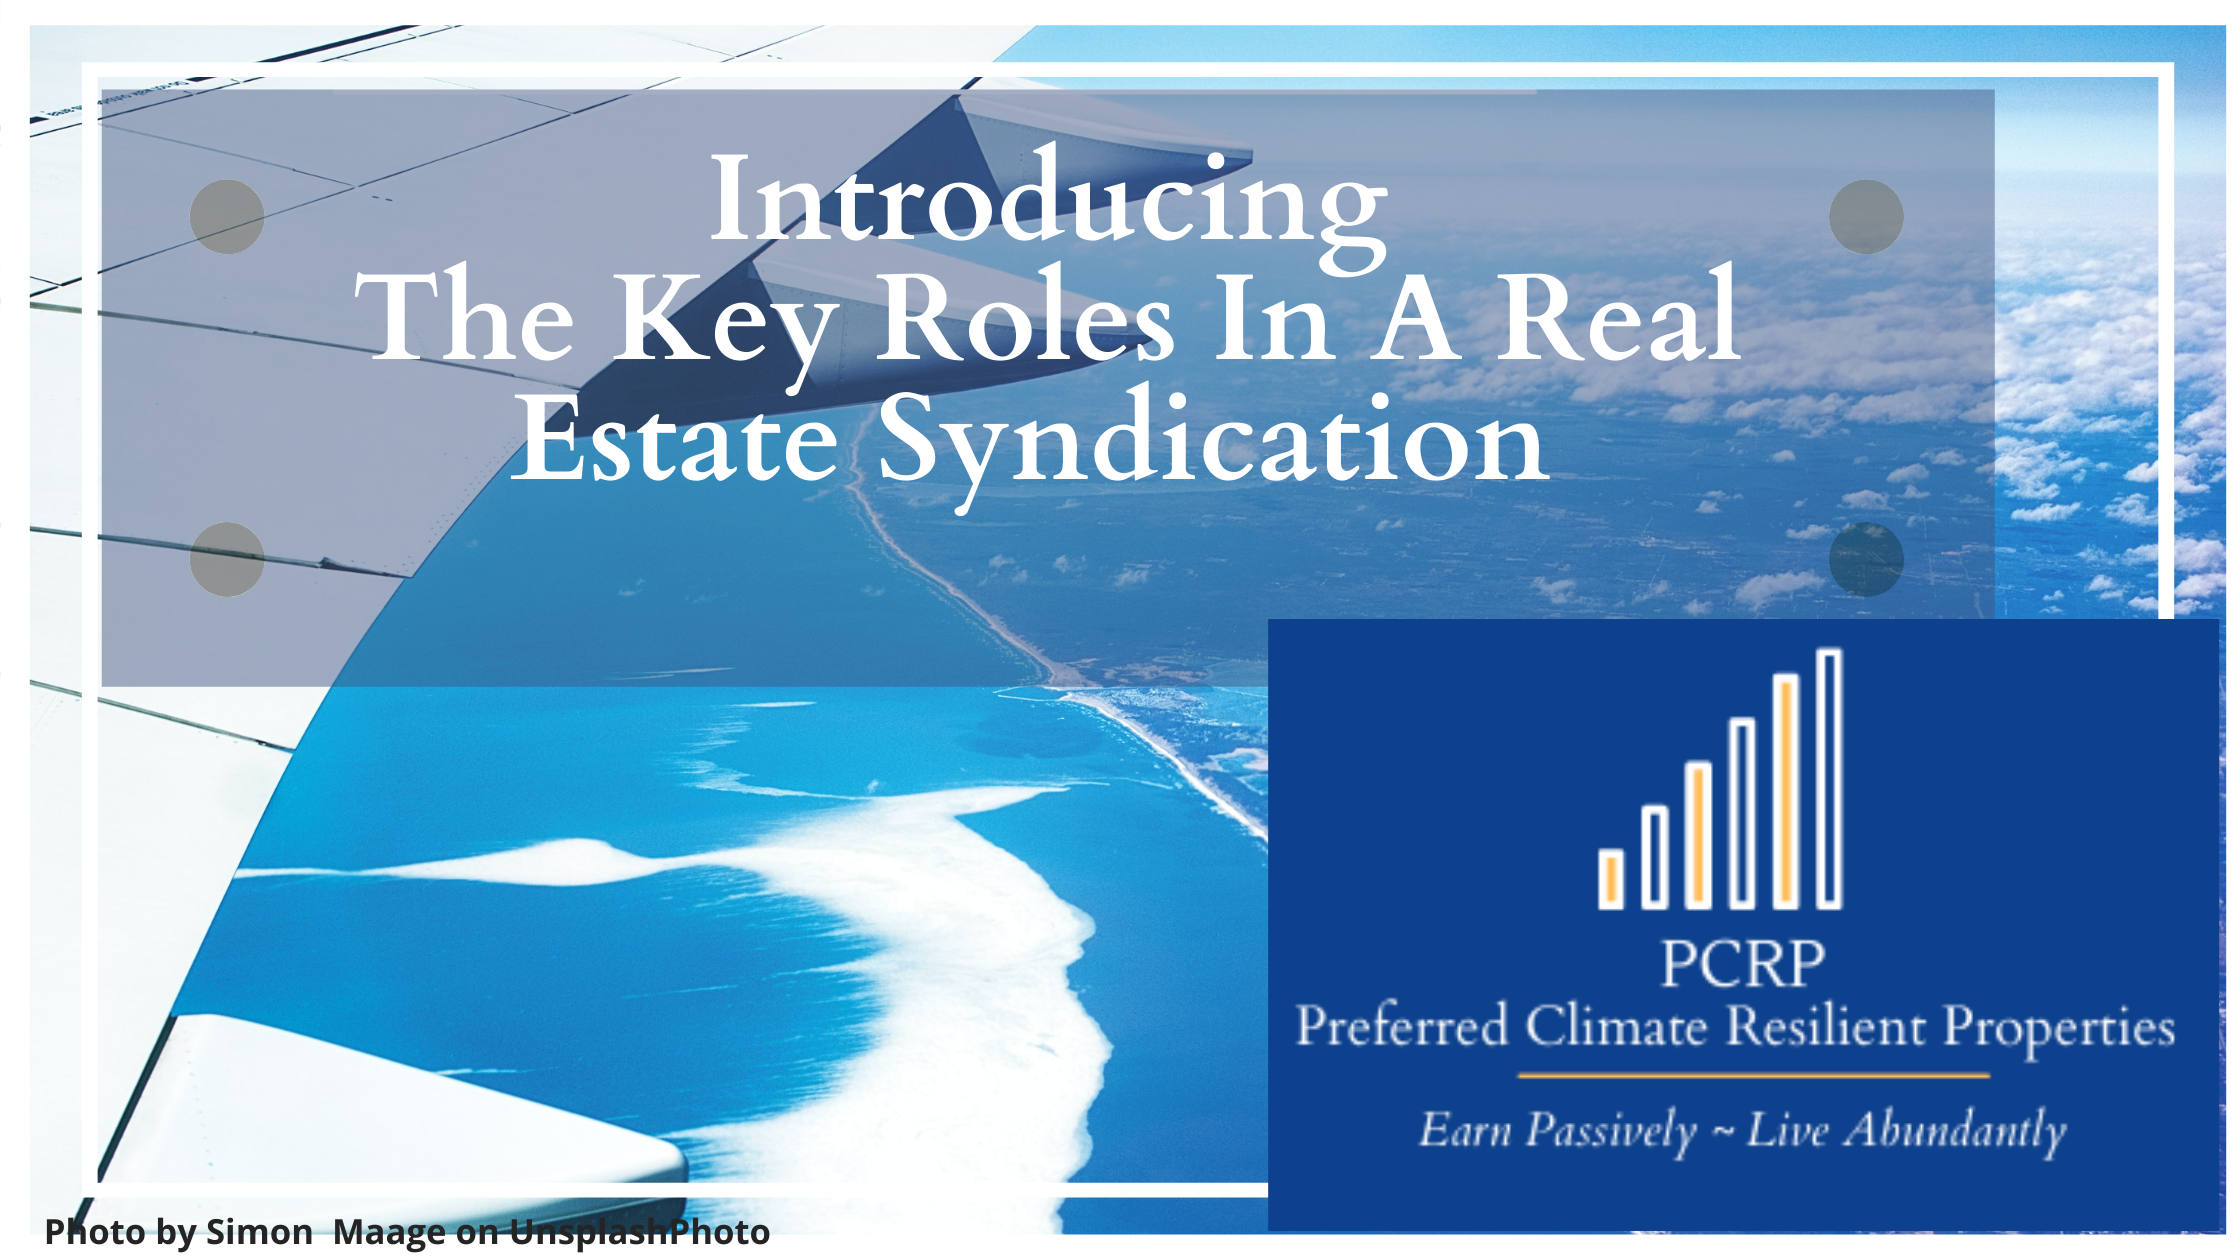 Key Roles in a Real Estate Syndication